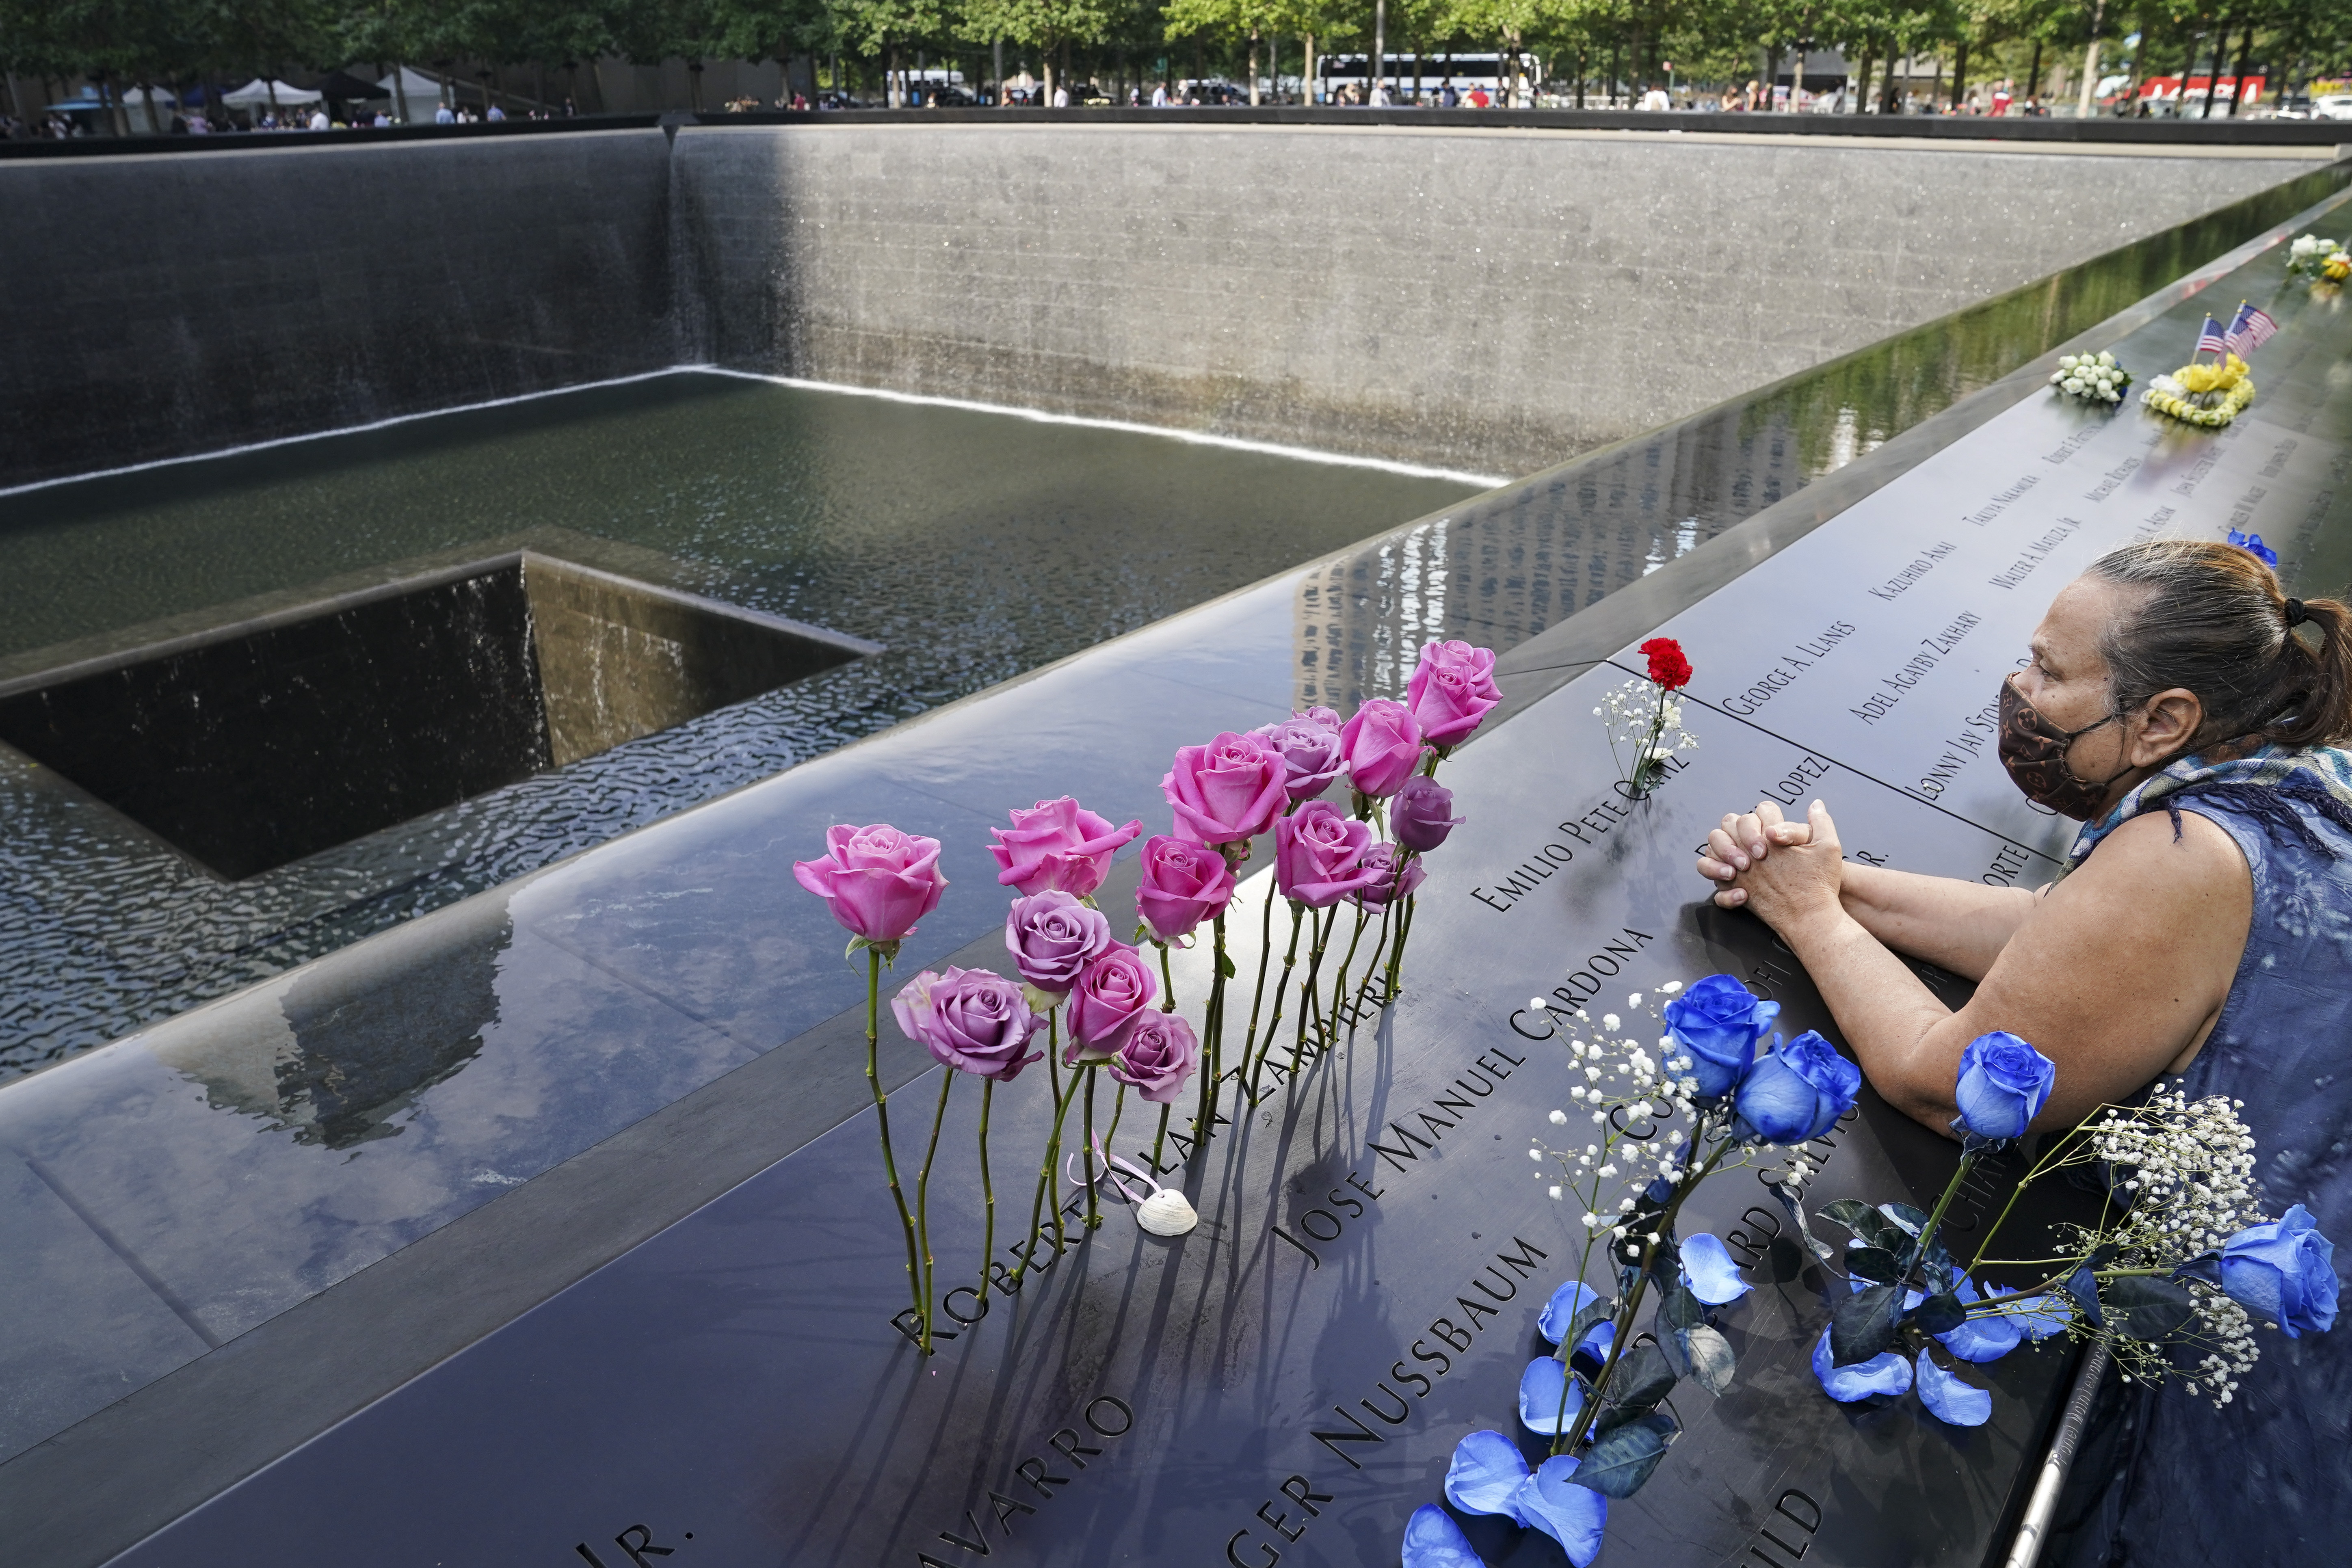 A mourner prays at the National September 11 Memorial and Museum in New York on Friday Sept. 11, 2020.